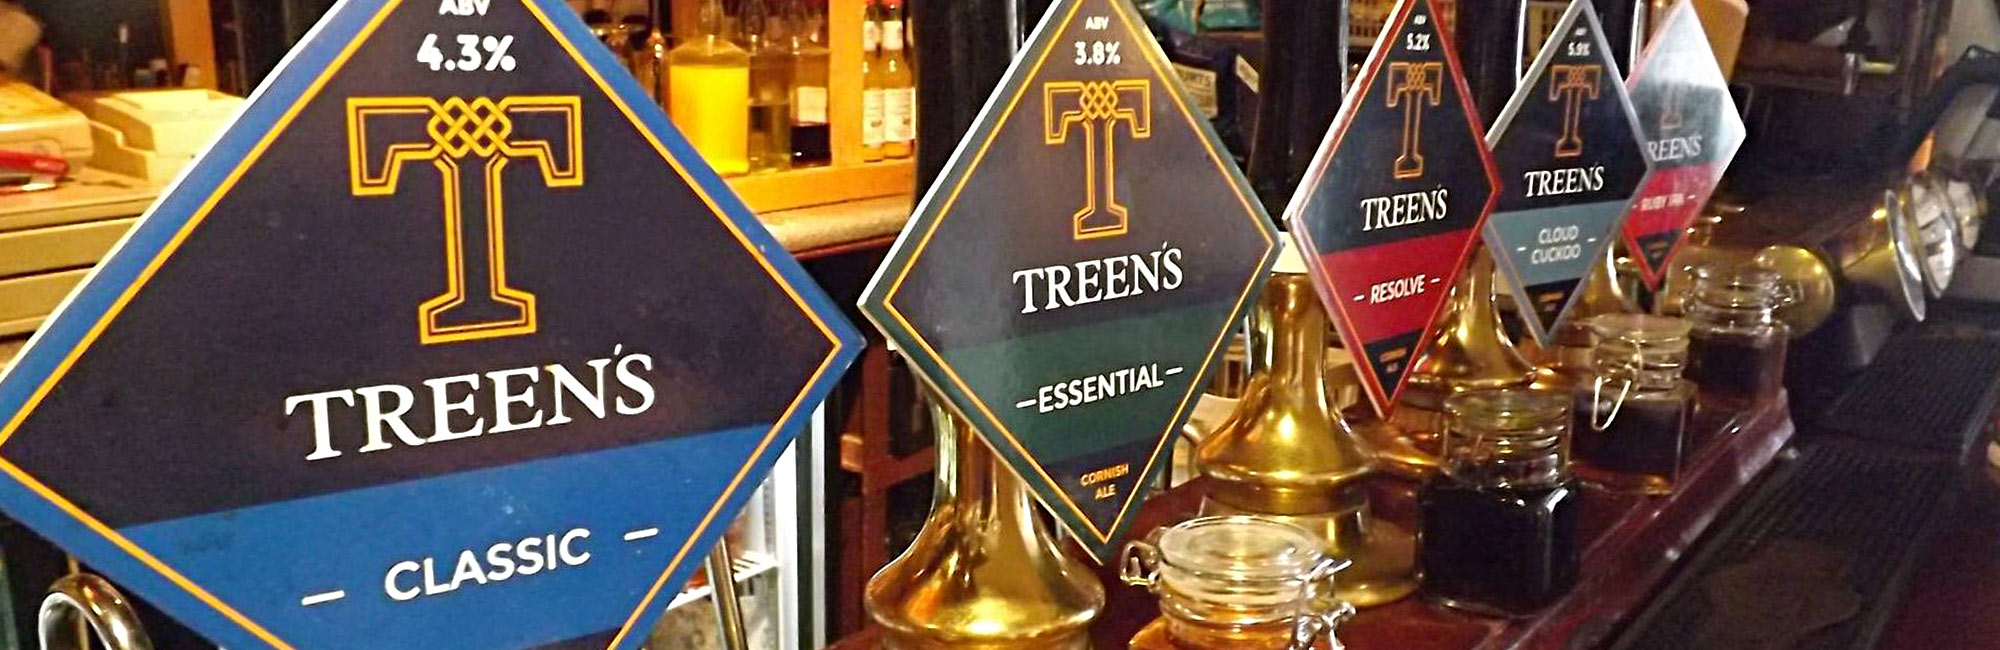 Treen's Brewery Print Design on Pump Clips